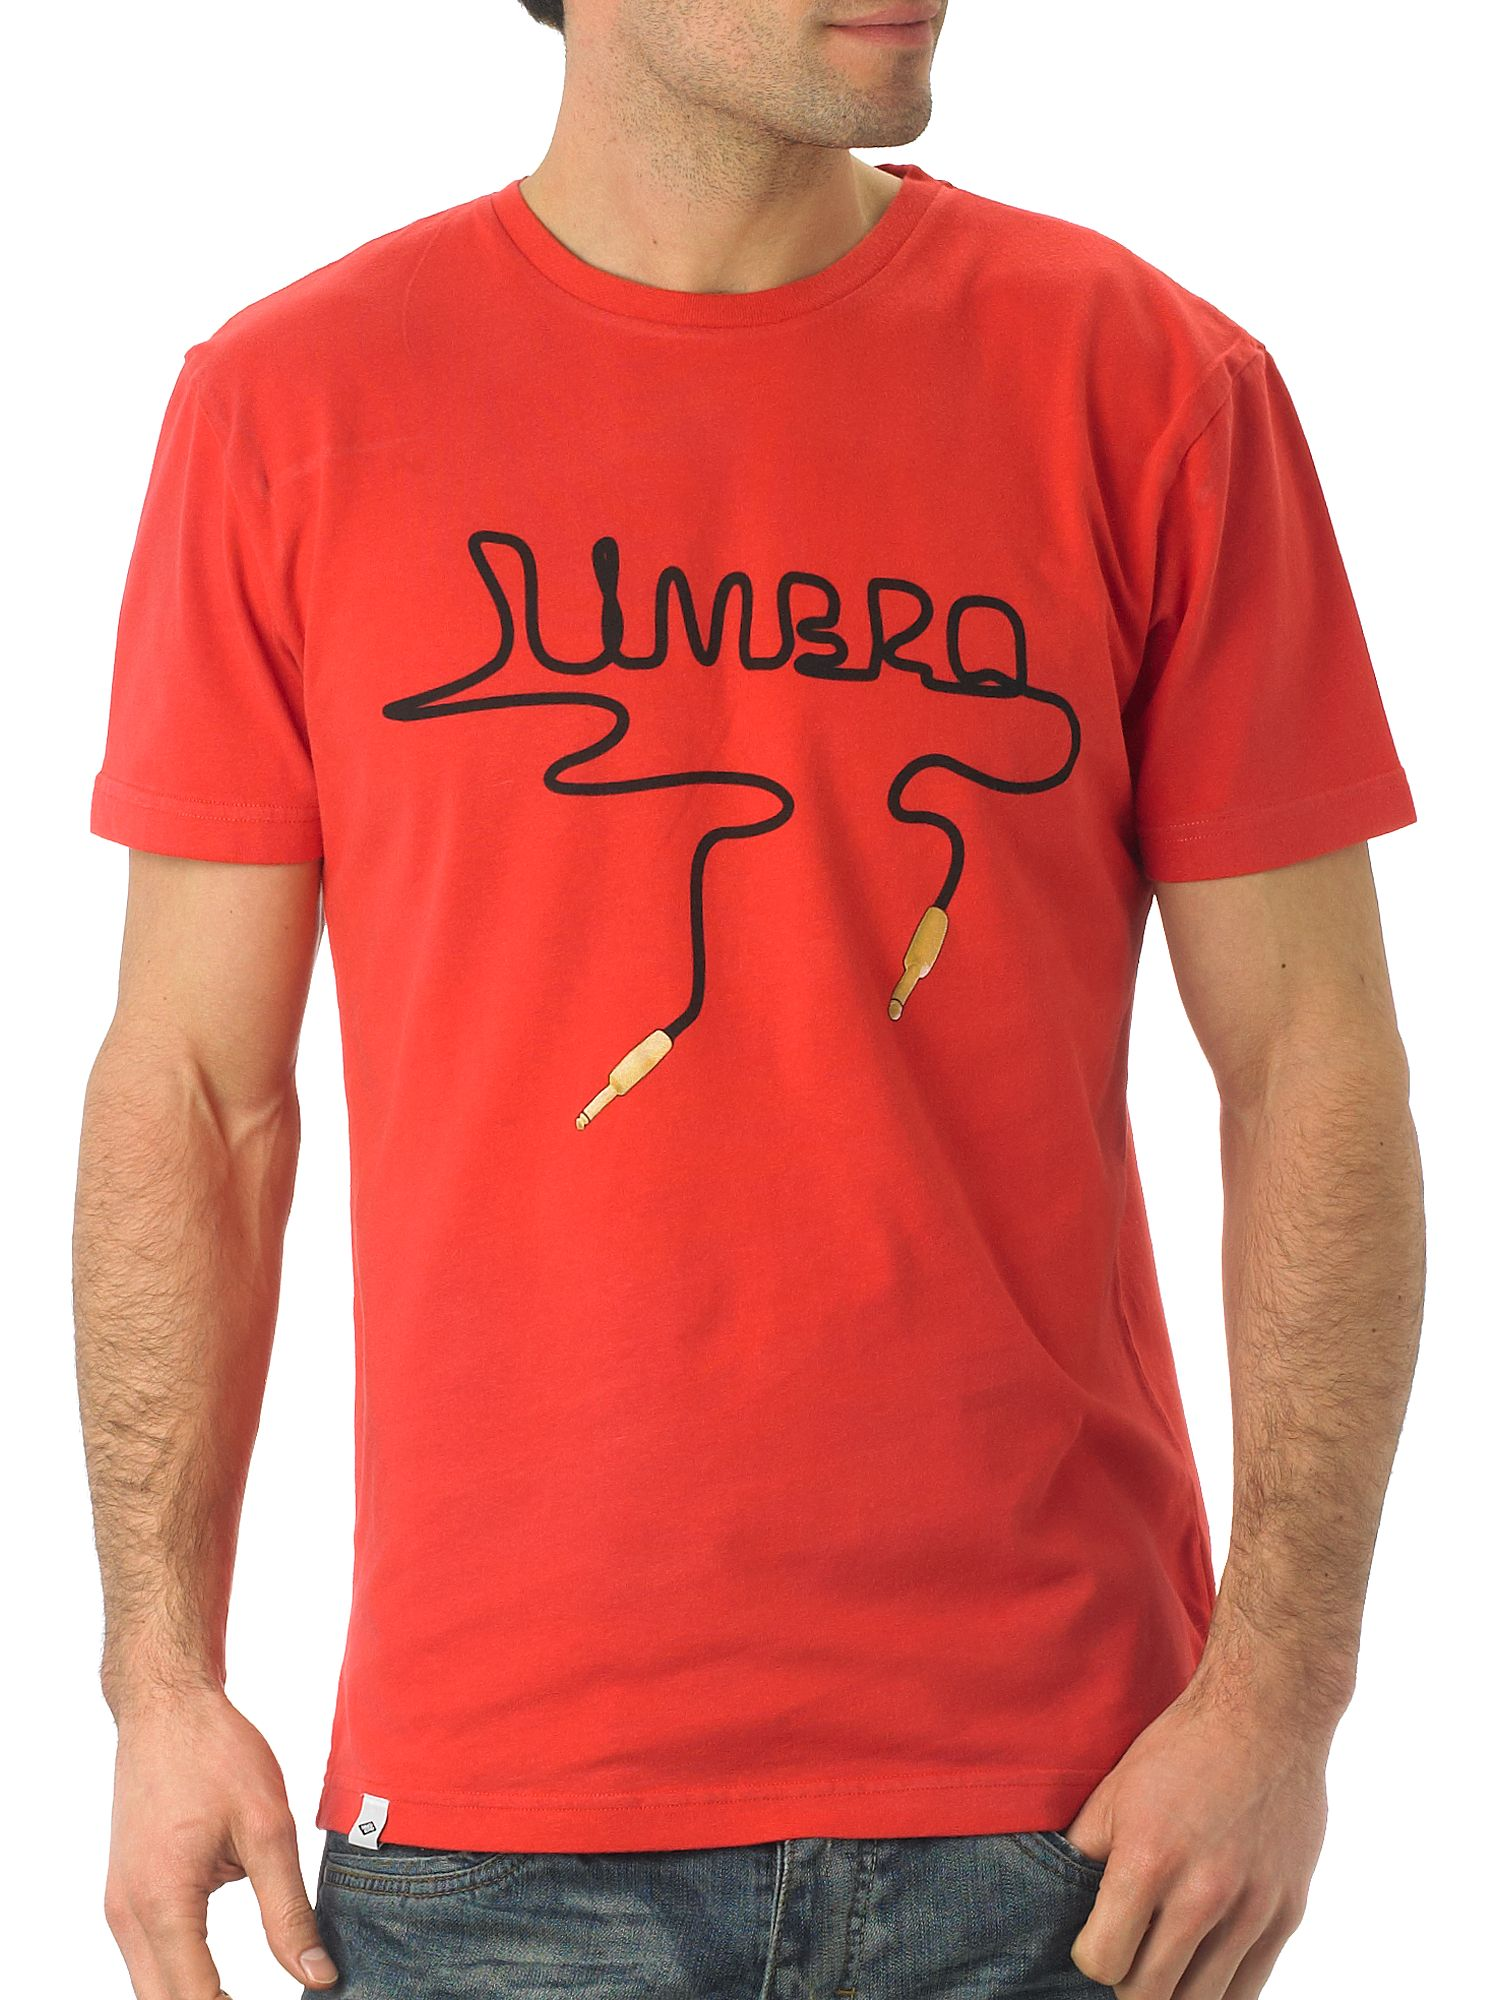 Umbro Guitar Cable Tee Red product image